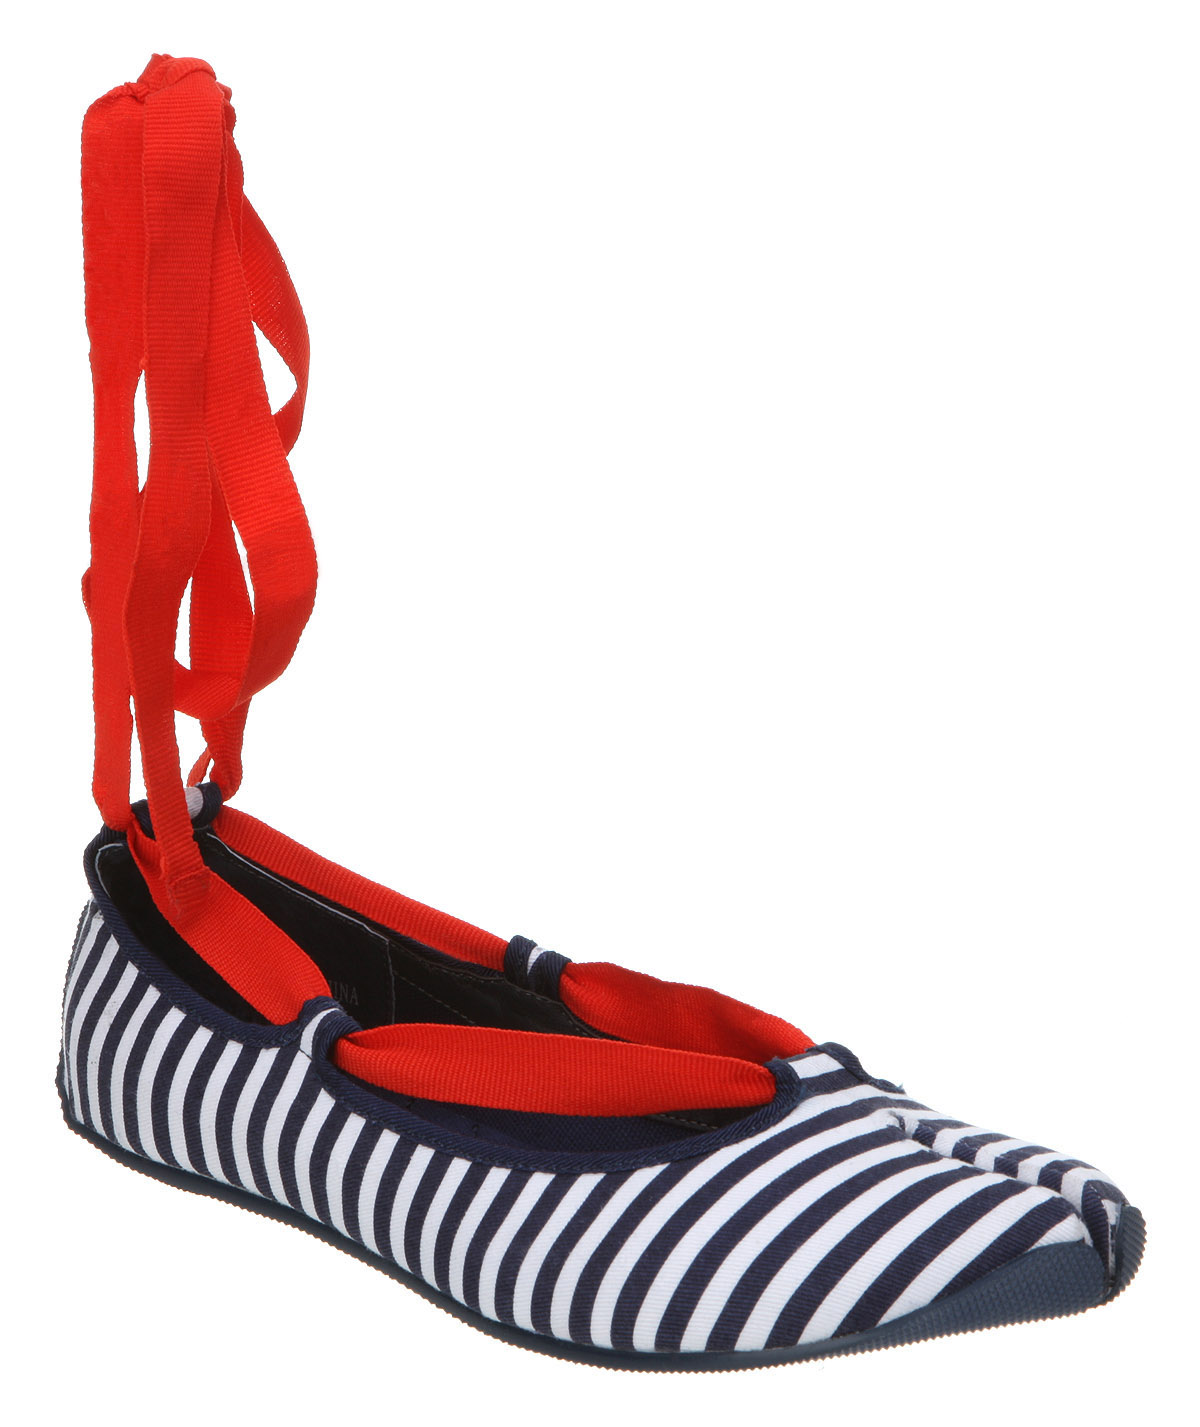 Womens-Office-Tickle-My-Toes-Blue-white-Striped-Shoes